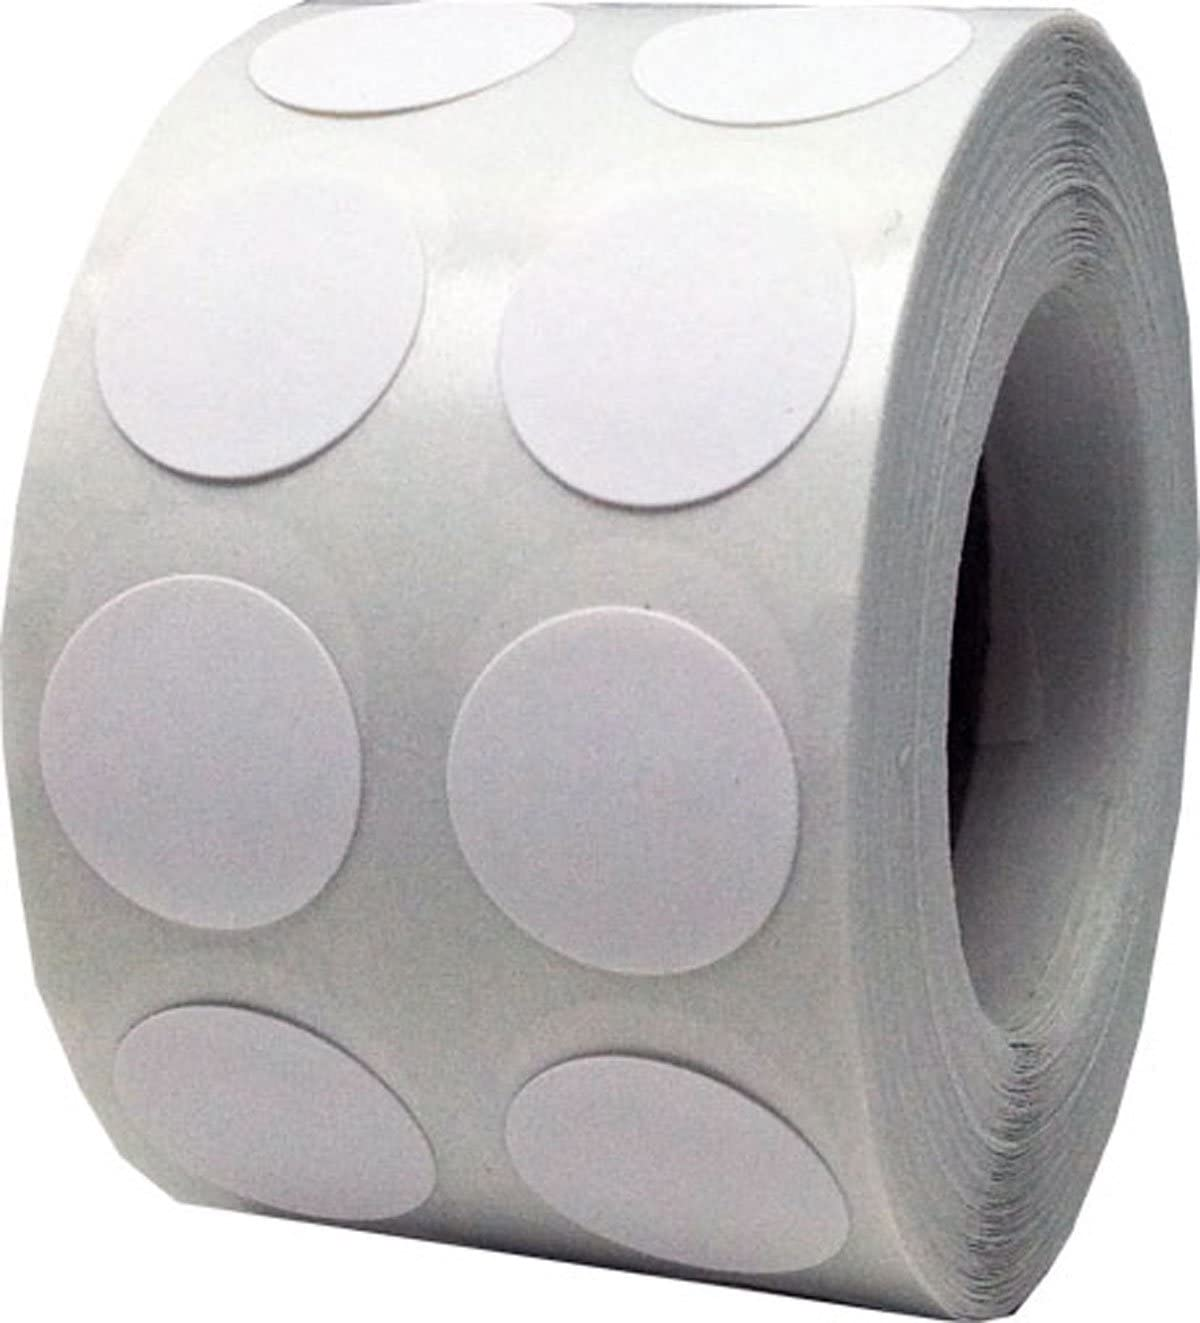 White Color Coding Labels for Organizing Inventory 0.50 Inch Round Circle Dots 1,000 Total Adhesive Stickers On A Roll